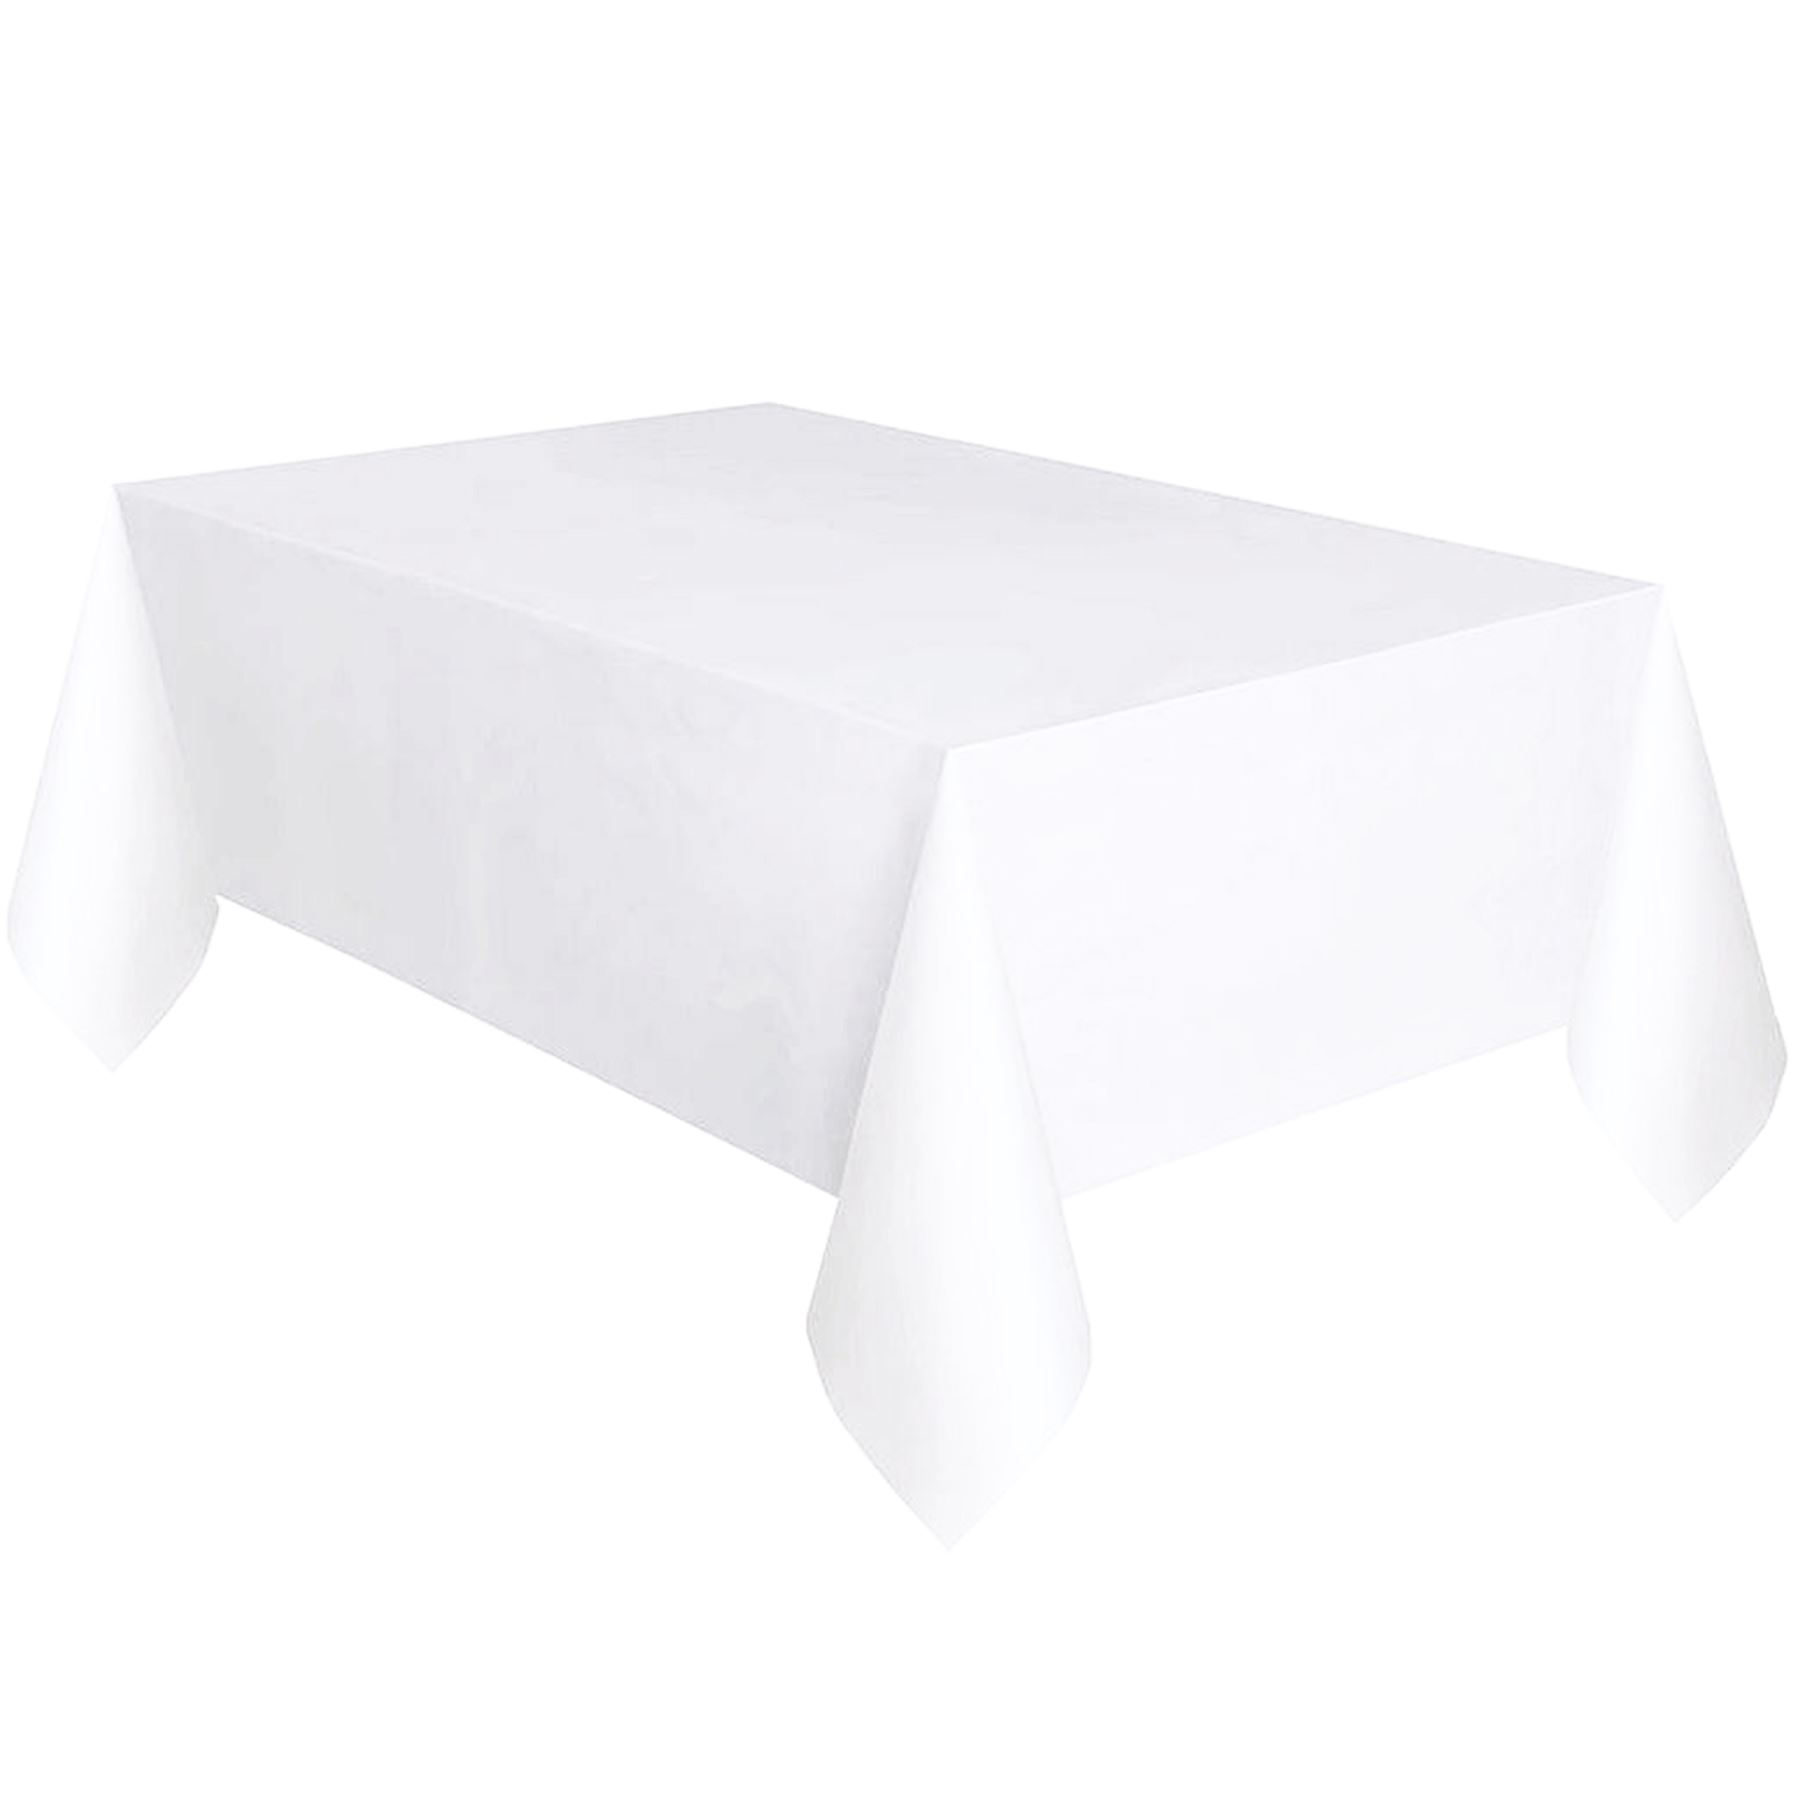 Superbe Plastic Table Cover Cloth Square Reusable Wipe Clean